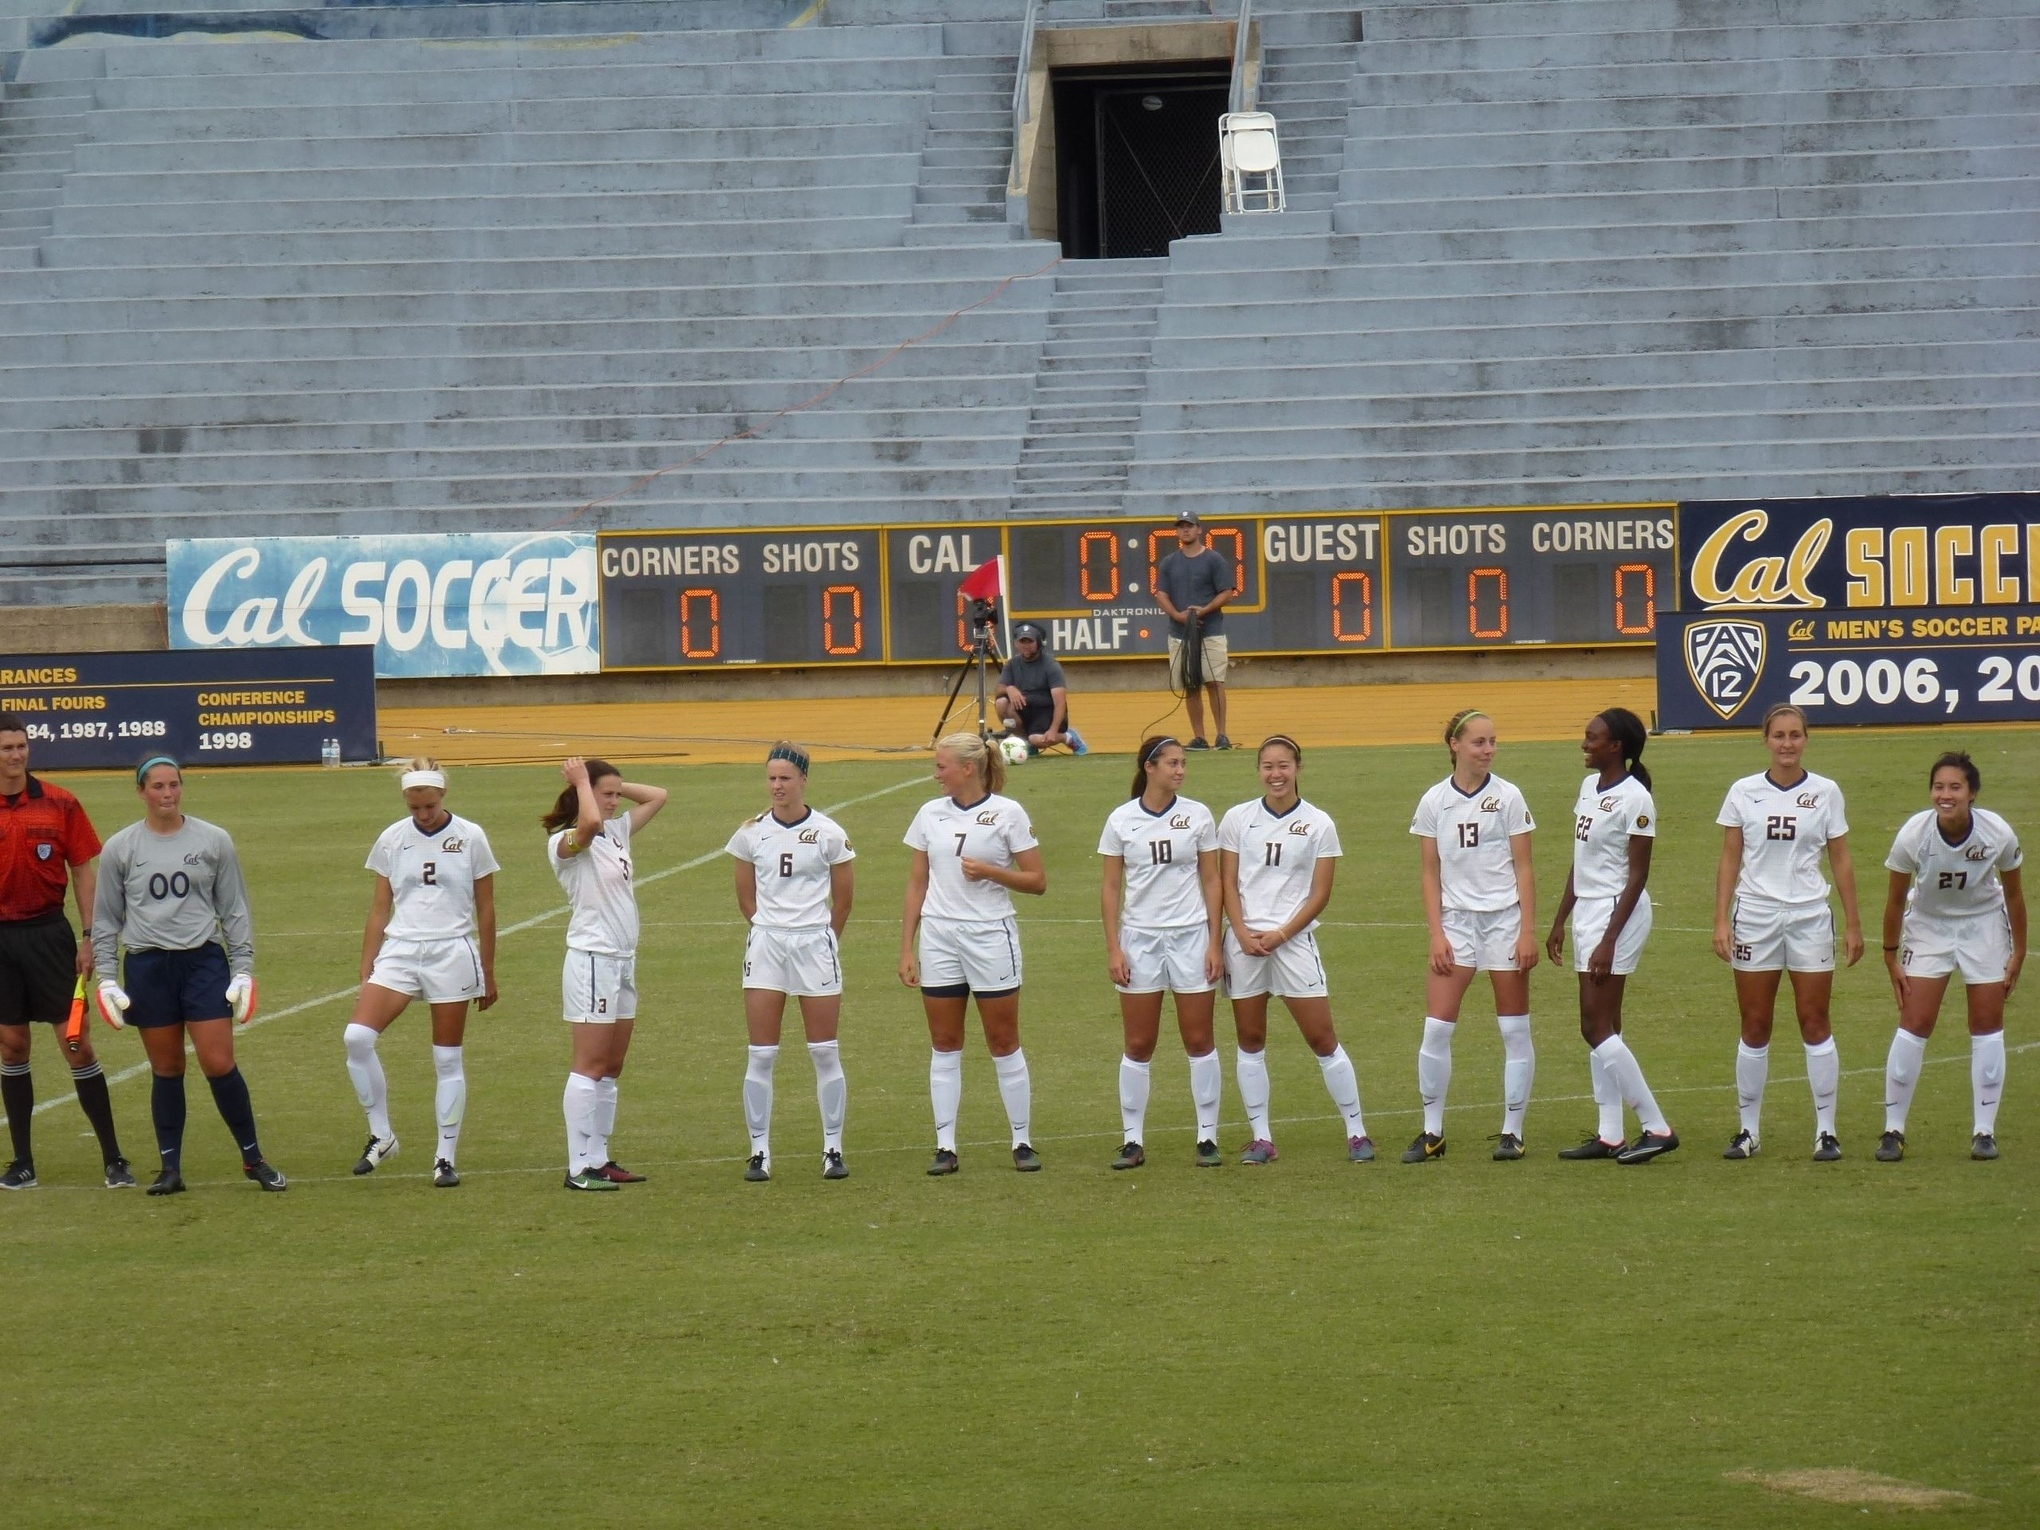 my cal women s soccer match experience a photo essay p1170444 medium